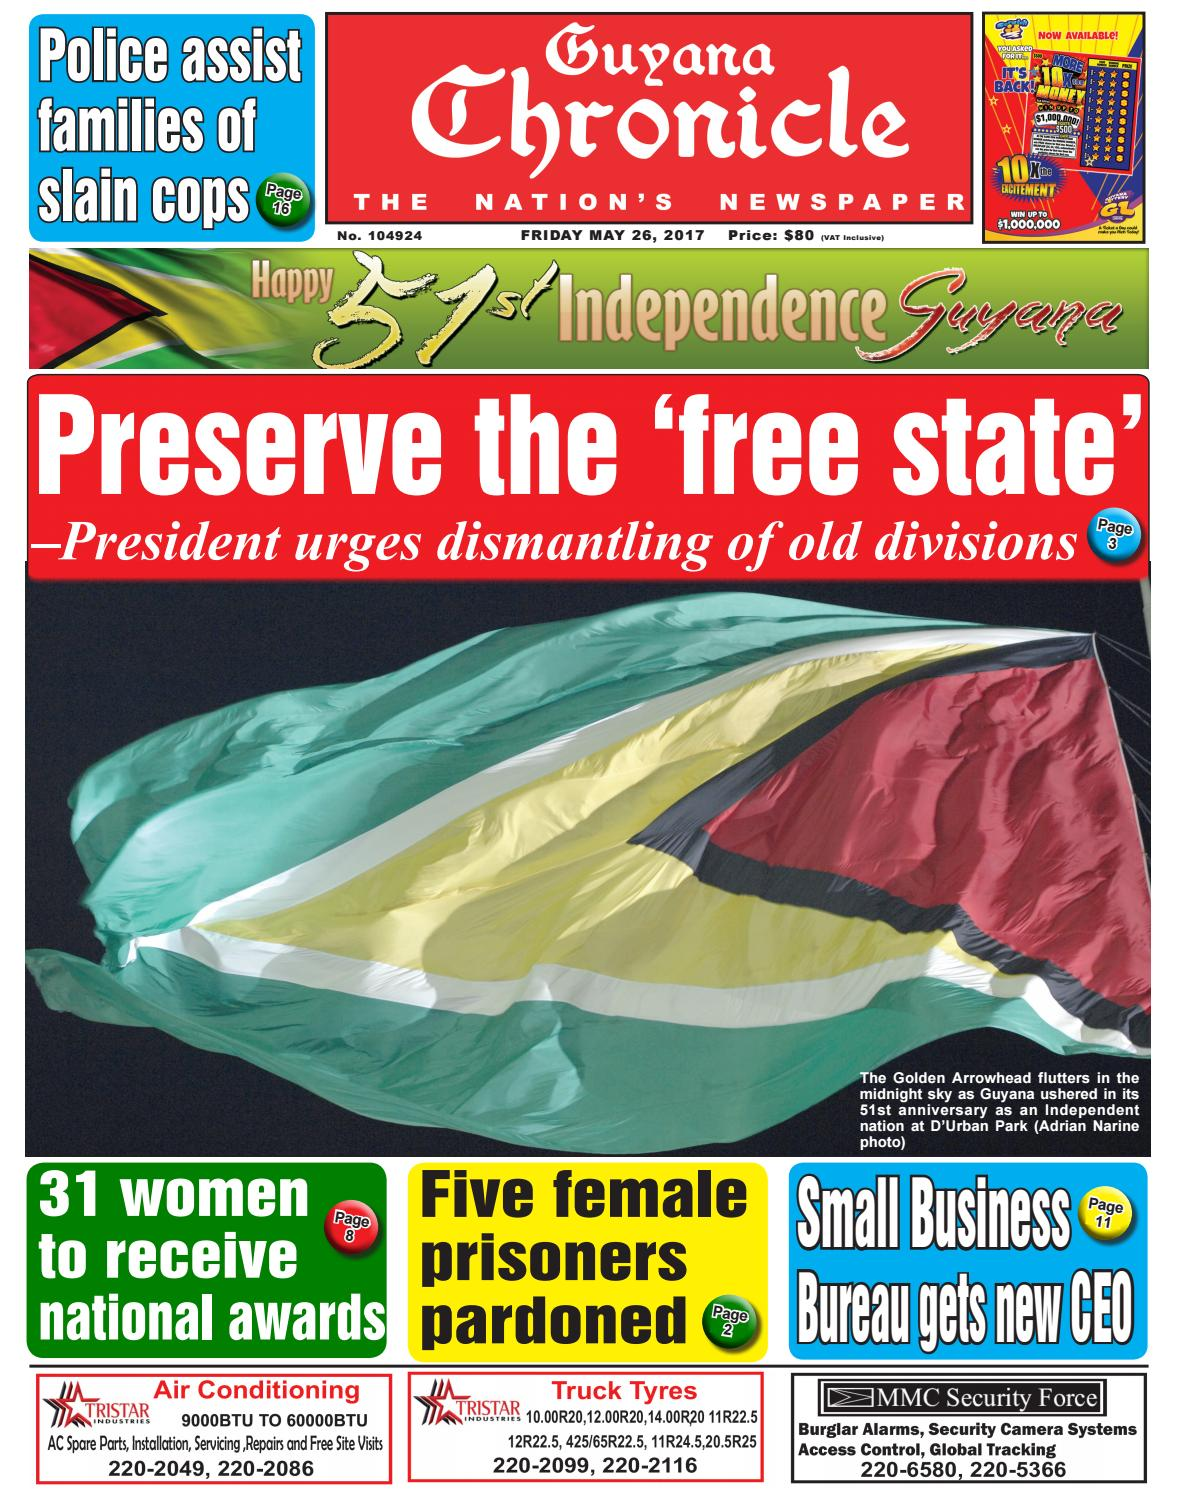 Guyana chronicle e paper 26 05 2017 by guyana chronicle e paper issuu nvjuhfo Image collections